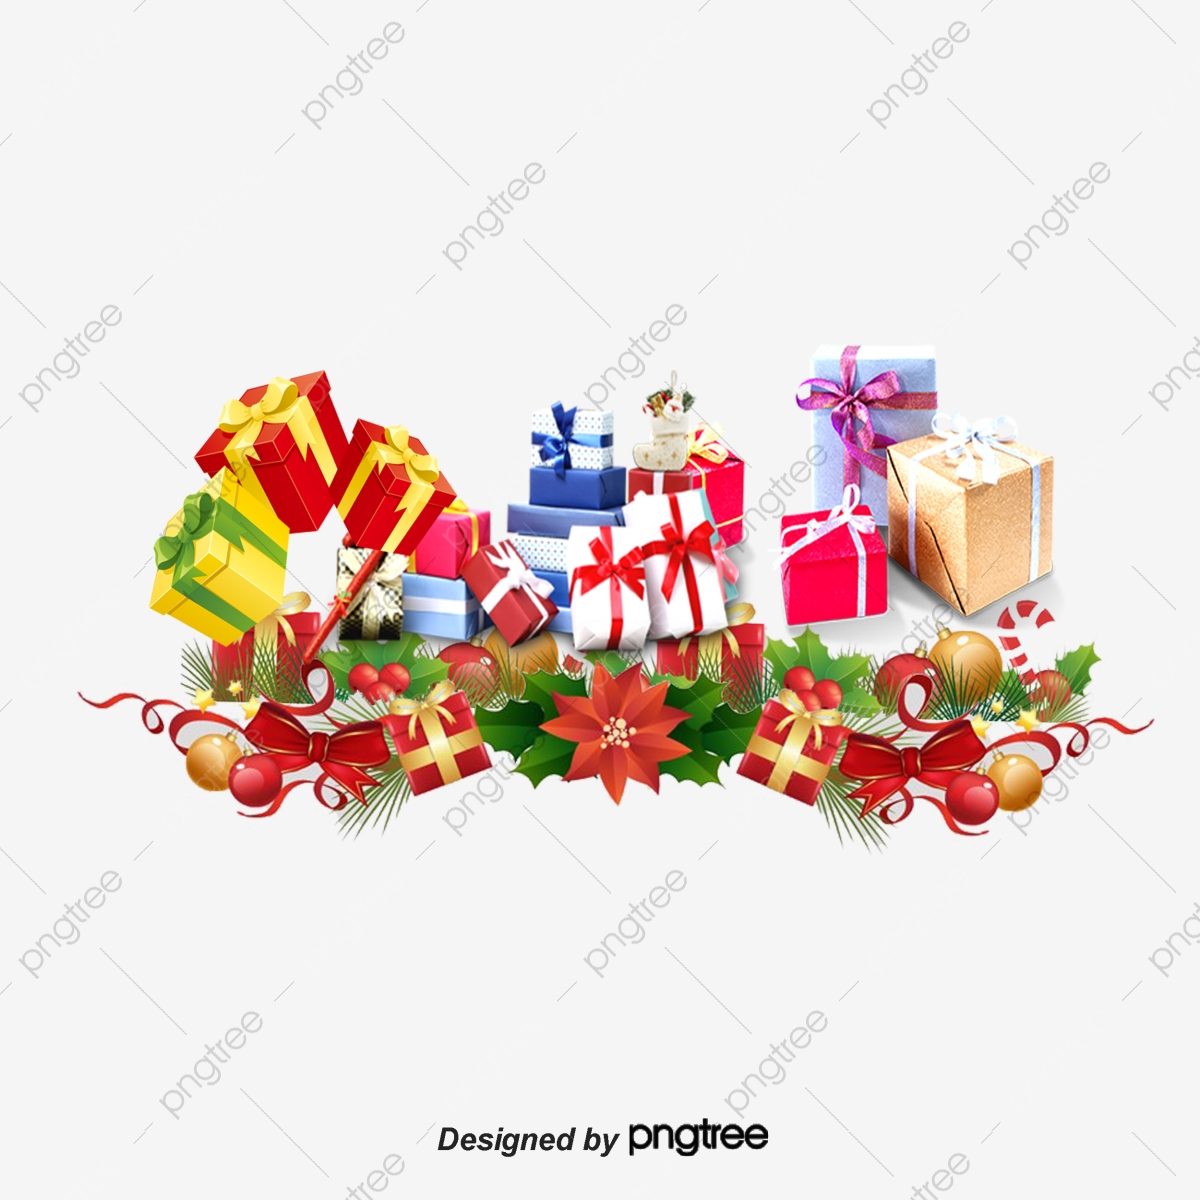 Christmas Gift Box Png.Christmas Gift Box Packaging Gift Clipart Christmas